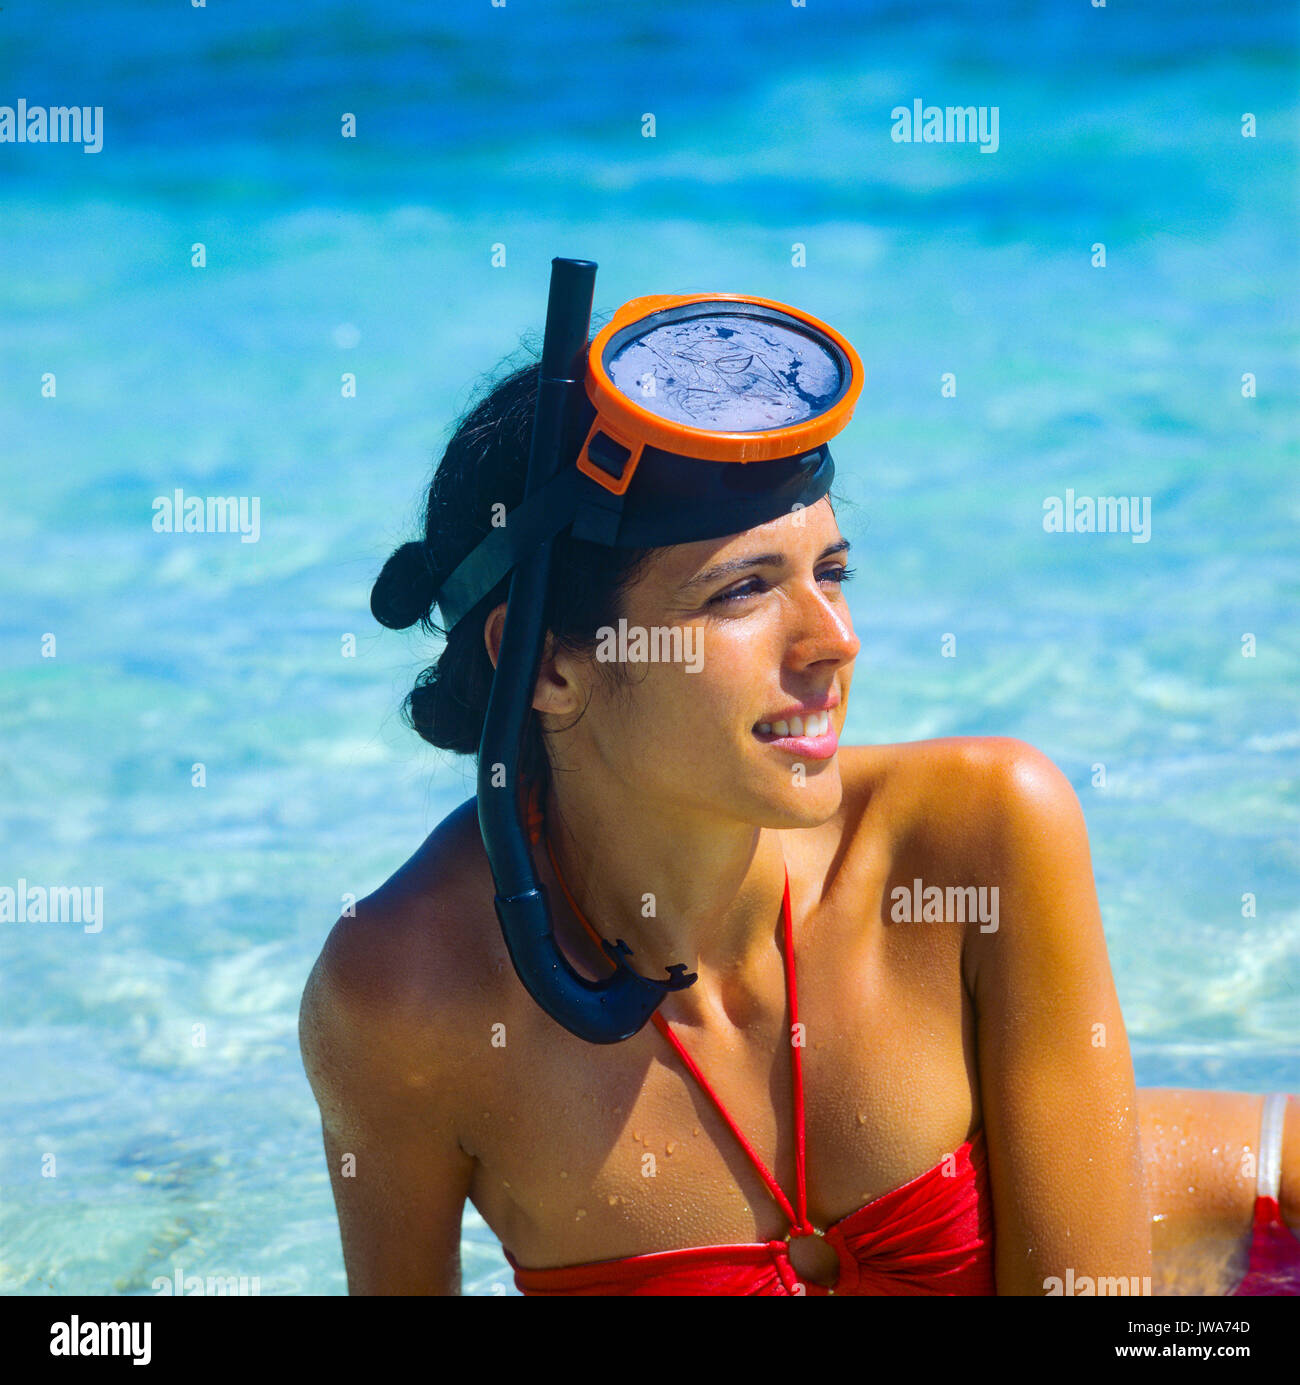 Smiling young woman portrait with snorkeling equipment, Caribbean sea, Guadeloupe, French West Indies - Stock Image